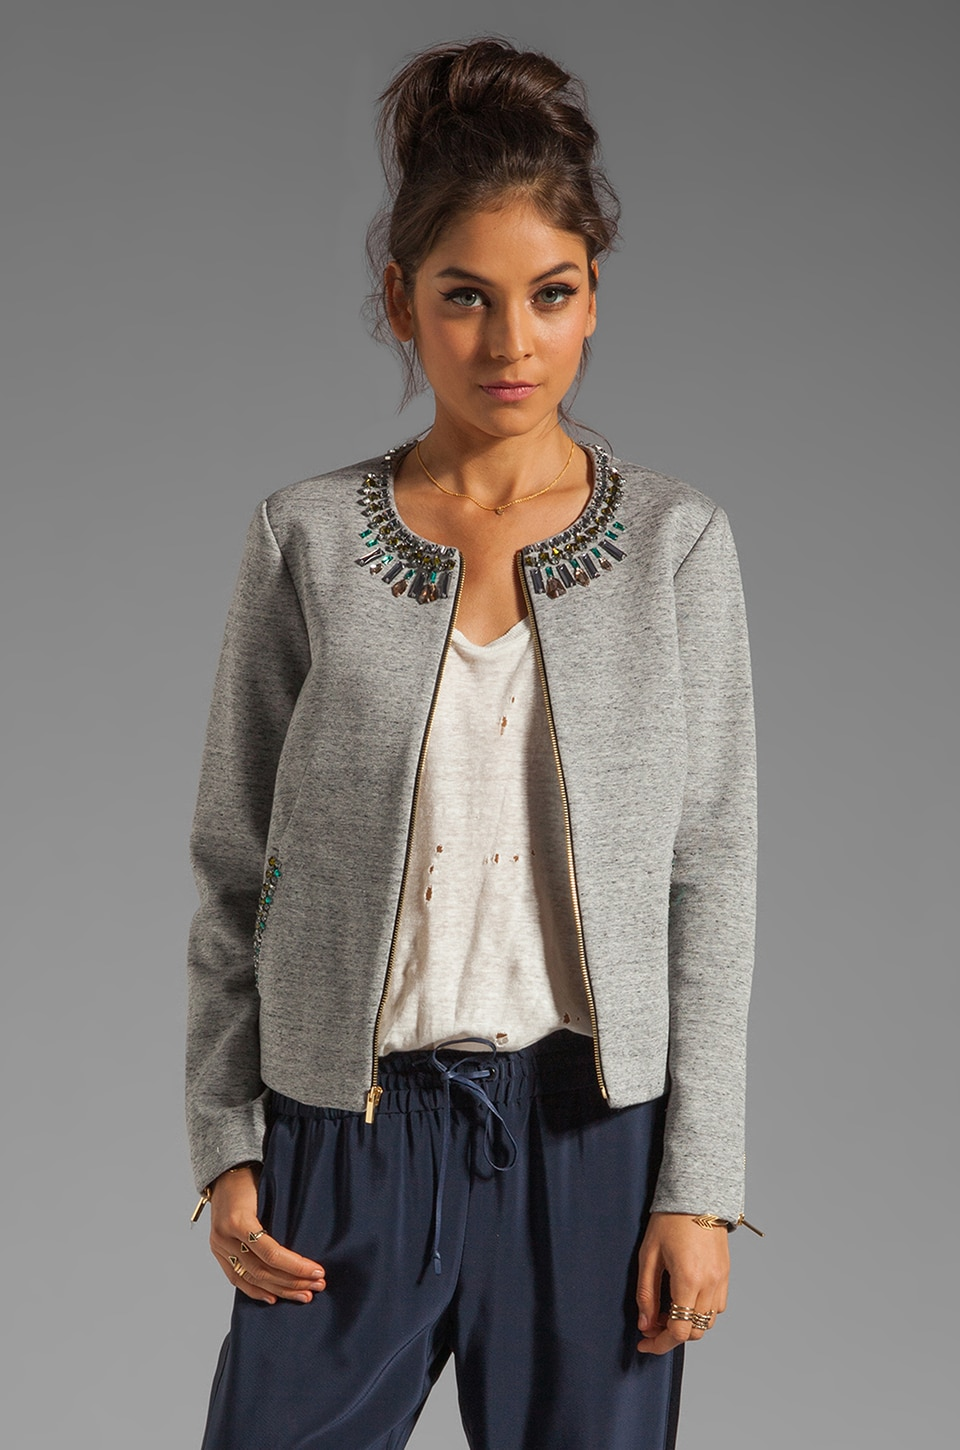 Elizabeth and James Quinn Jacket in Heather Grey/Charcoal